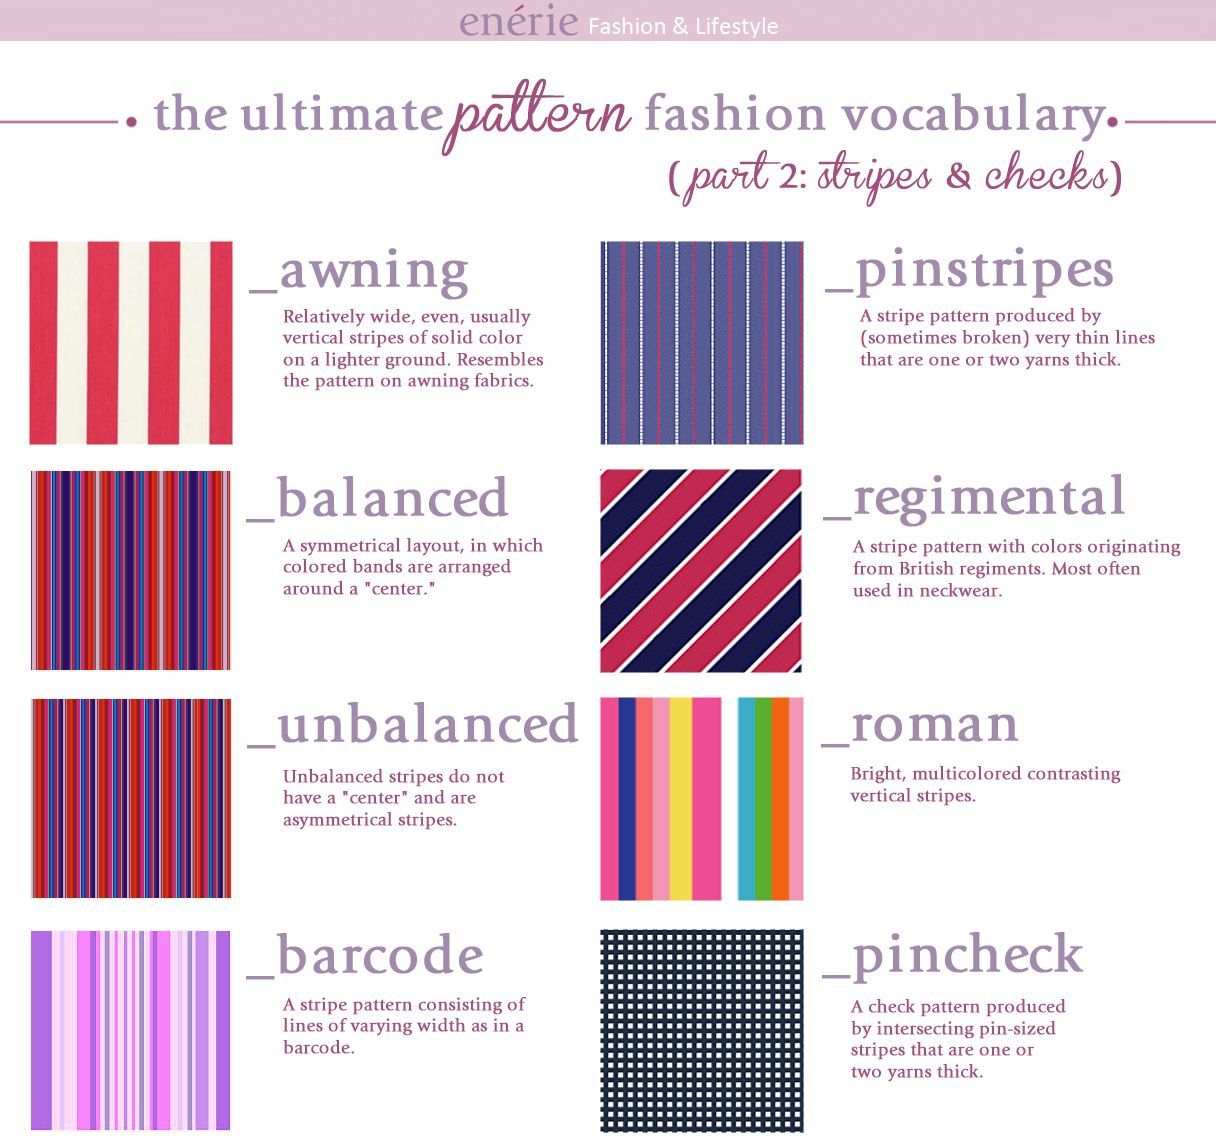 diy fashion pattern vocabulary part 2 infographic from enerie here also from enerie fashion. Black Bedroom Furniture Sets. Home Design Ideas